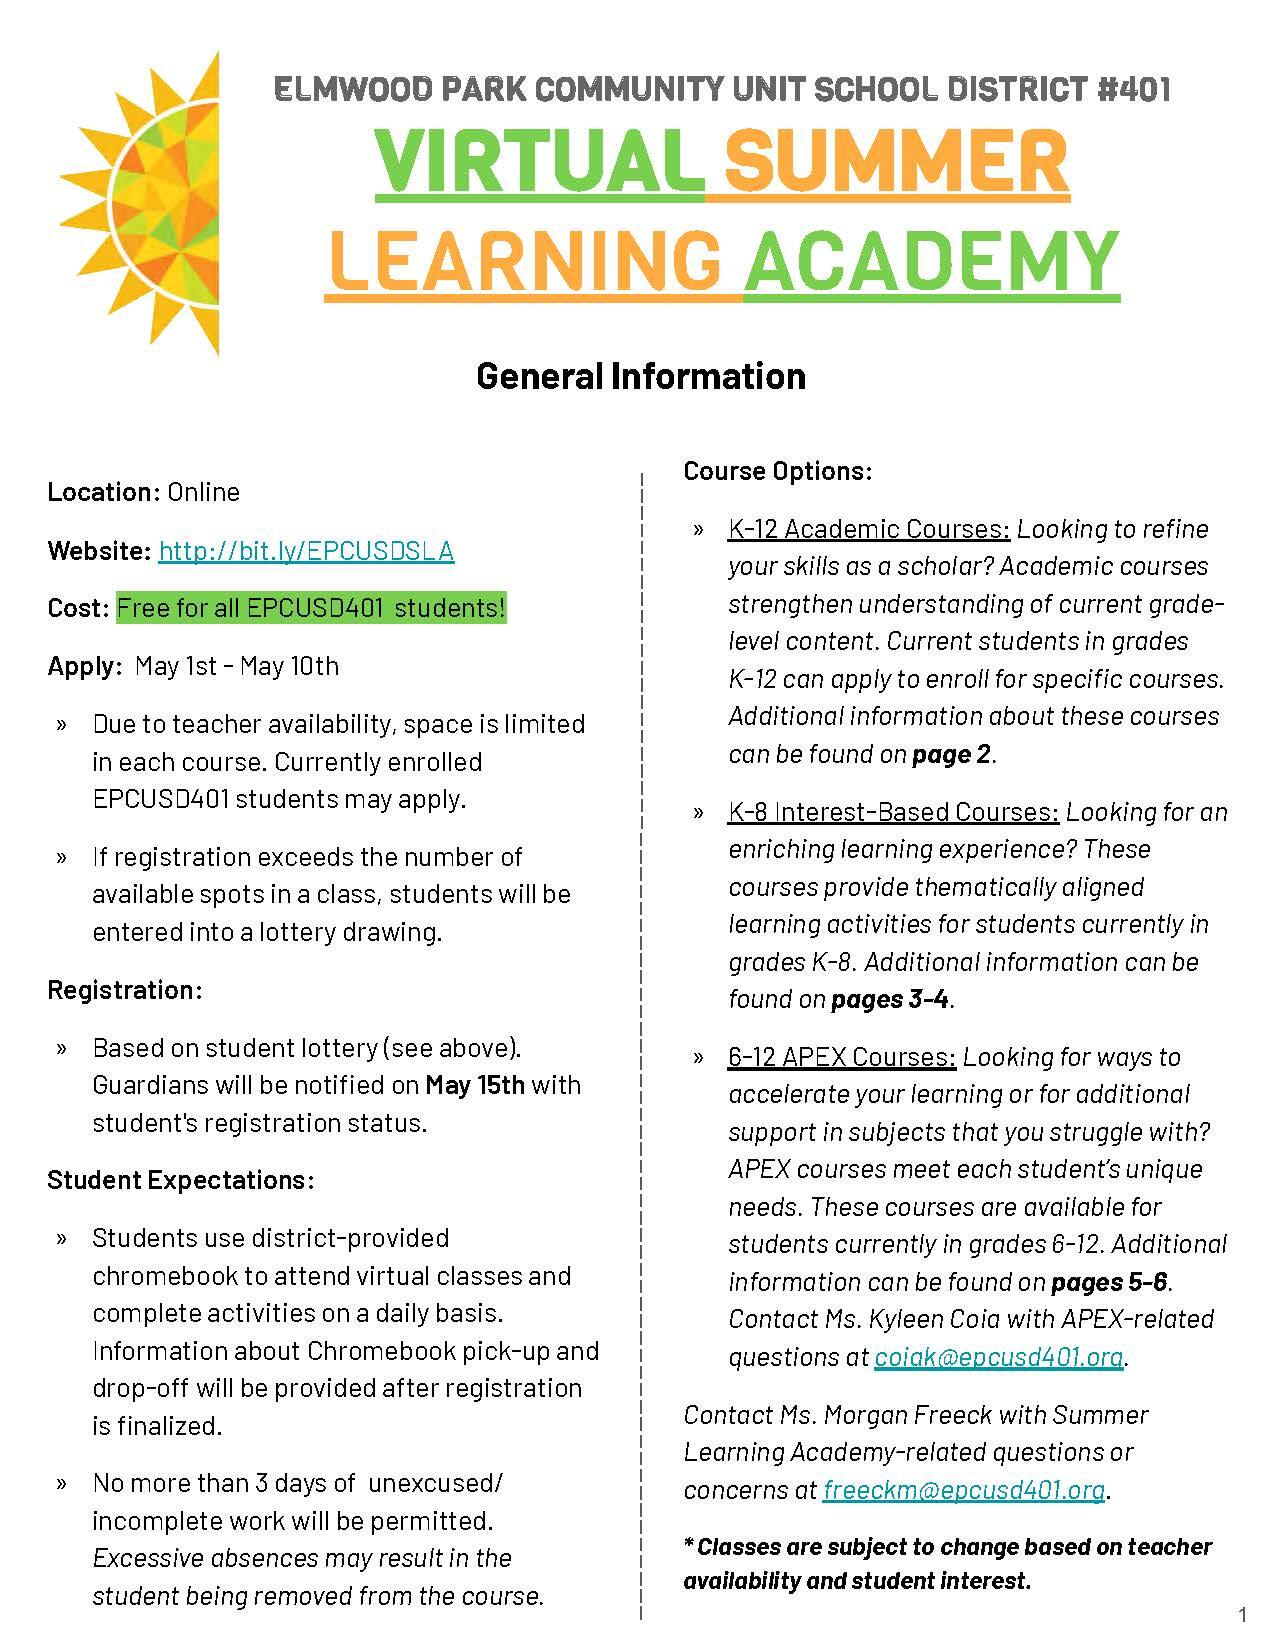 Virtual Summer Academy flyer